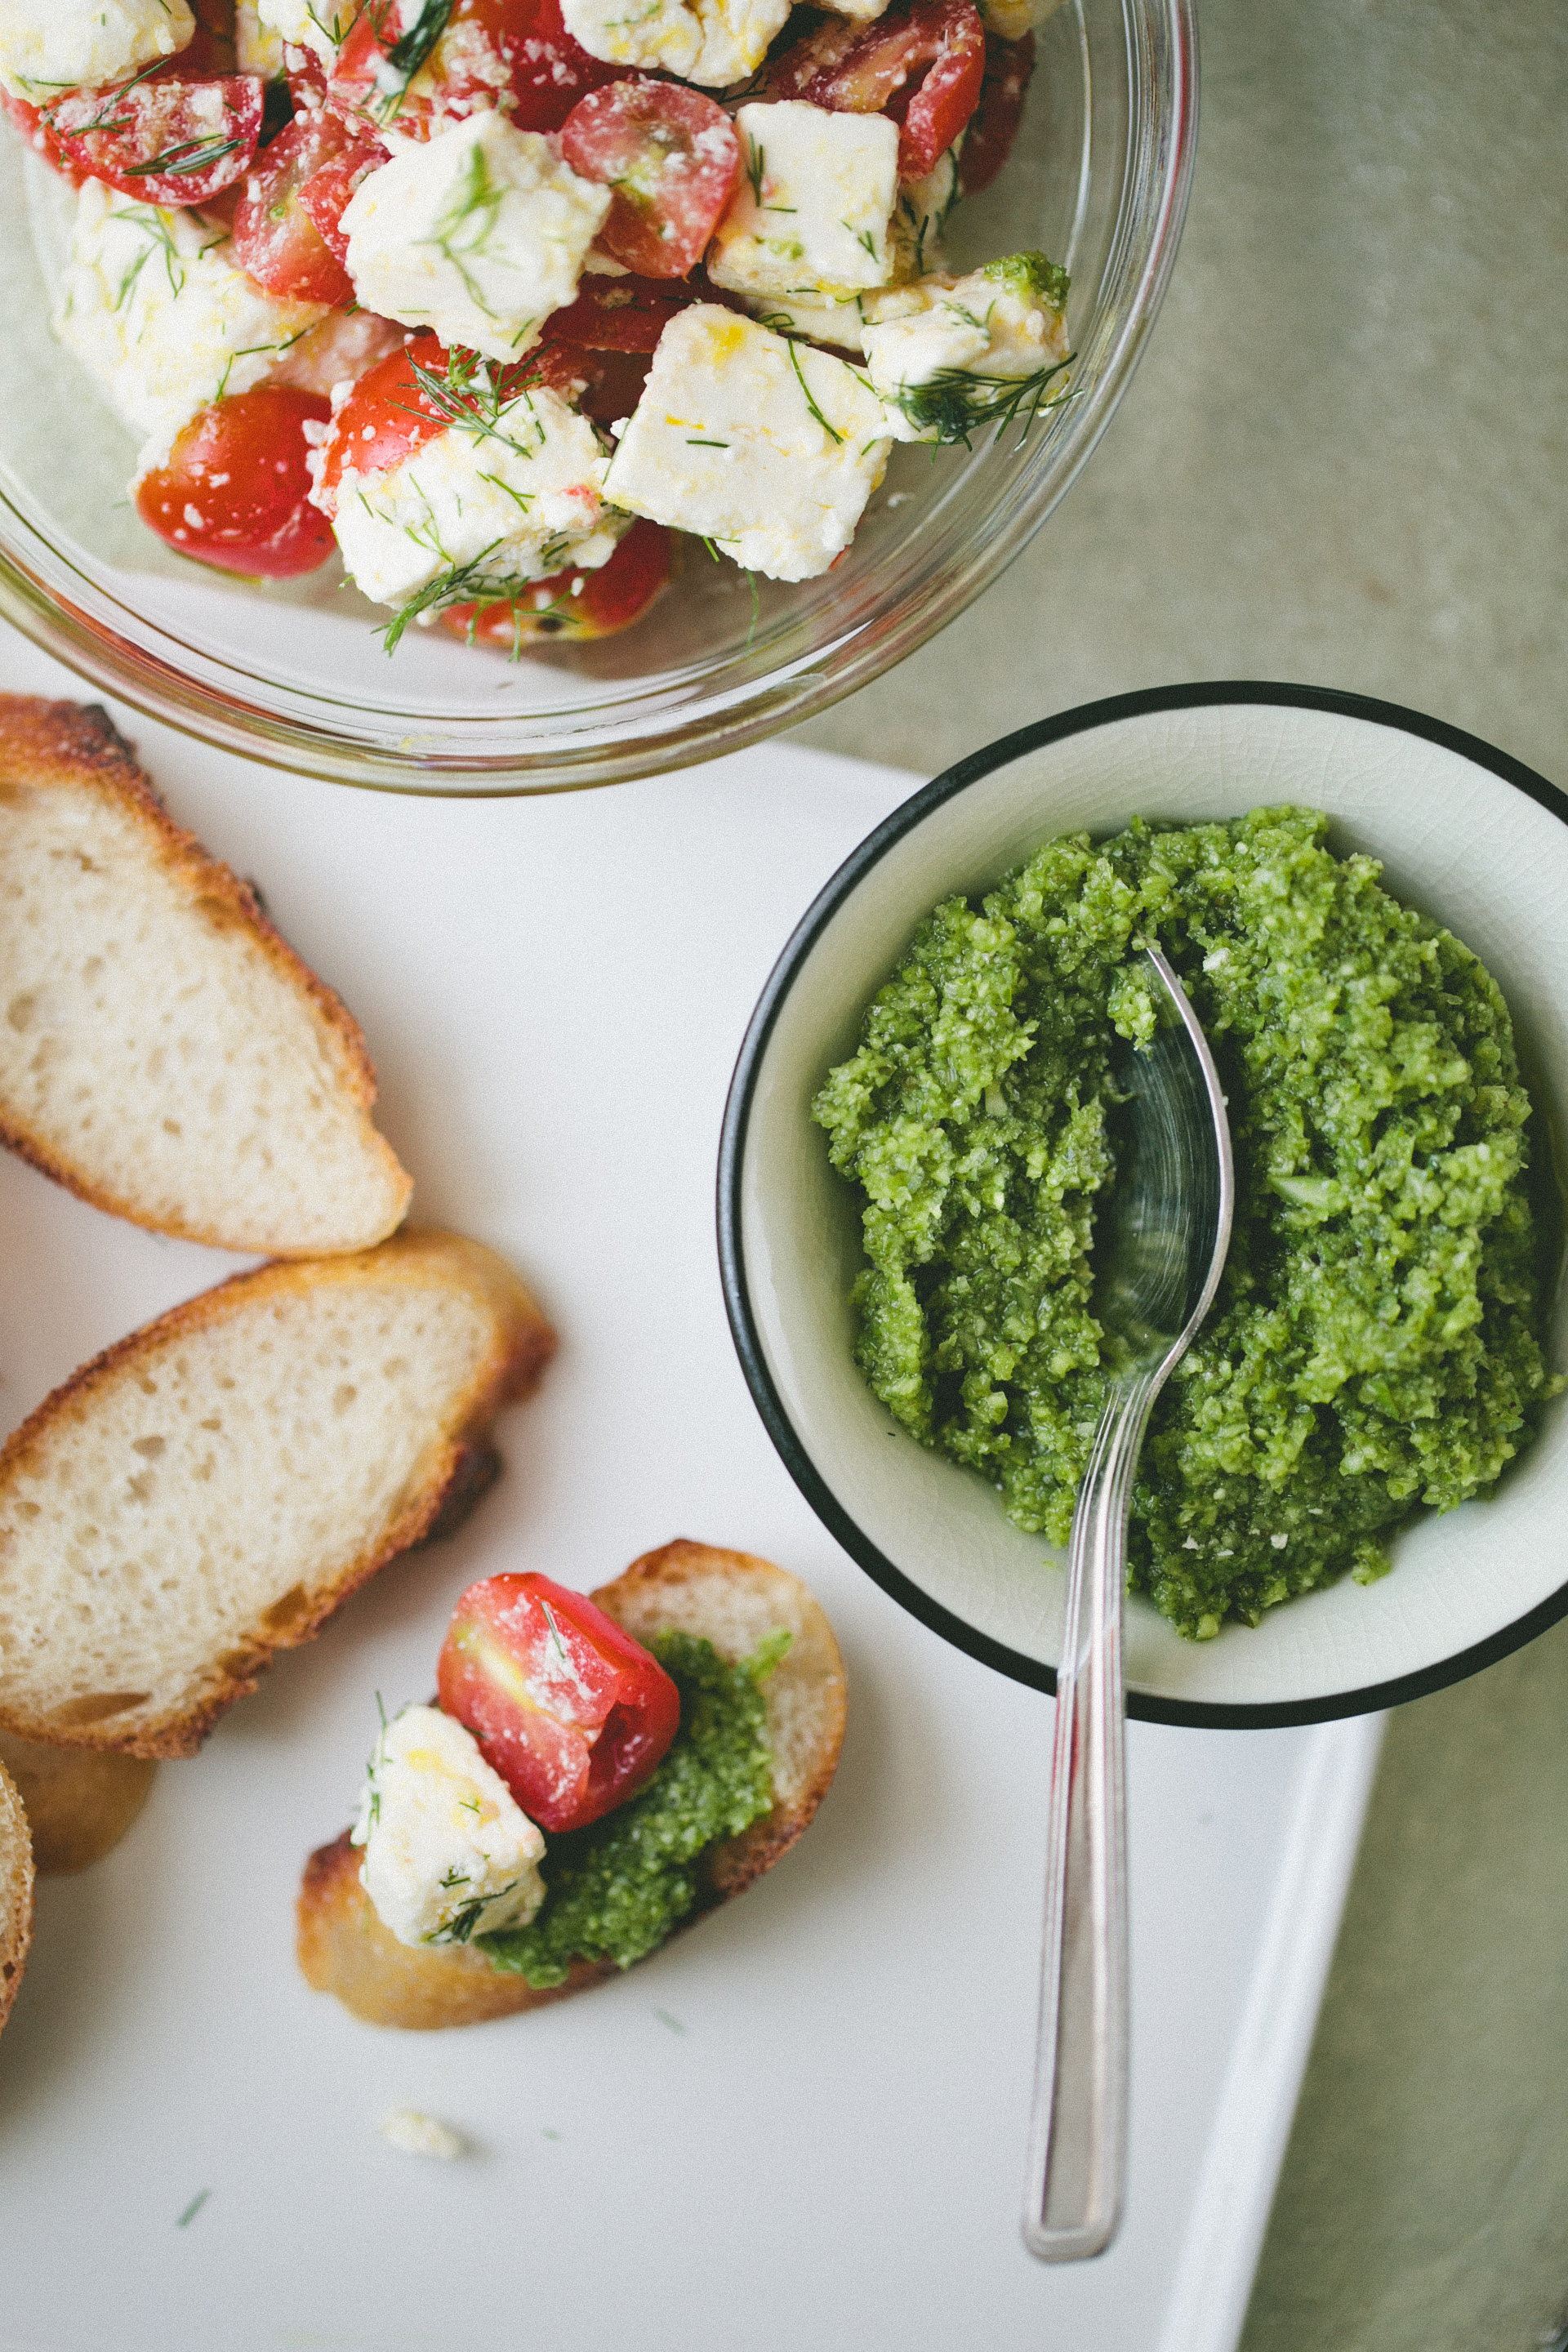 Marinated Feta + Garlic Scape Pesto